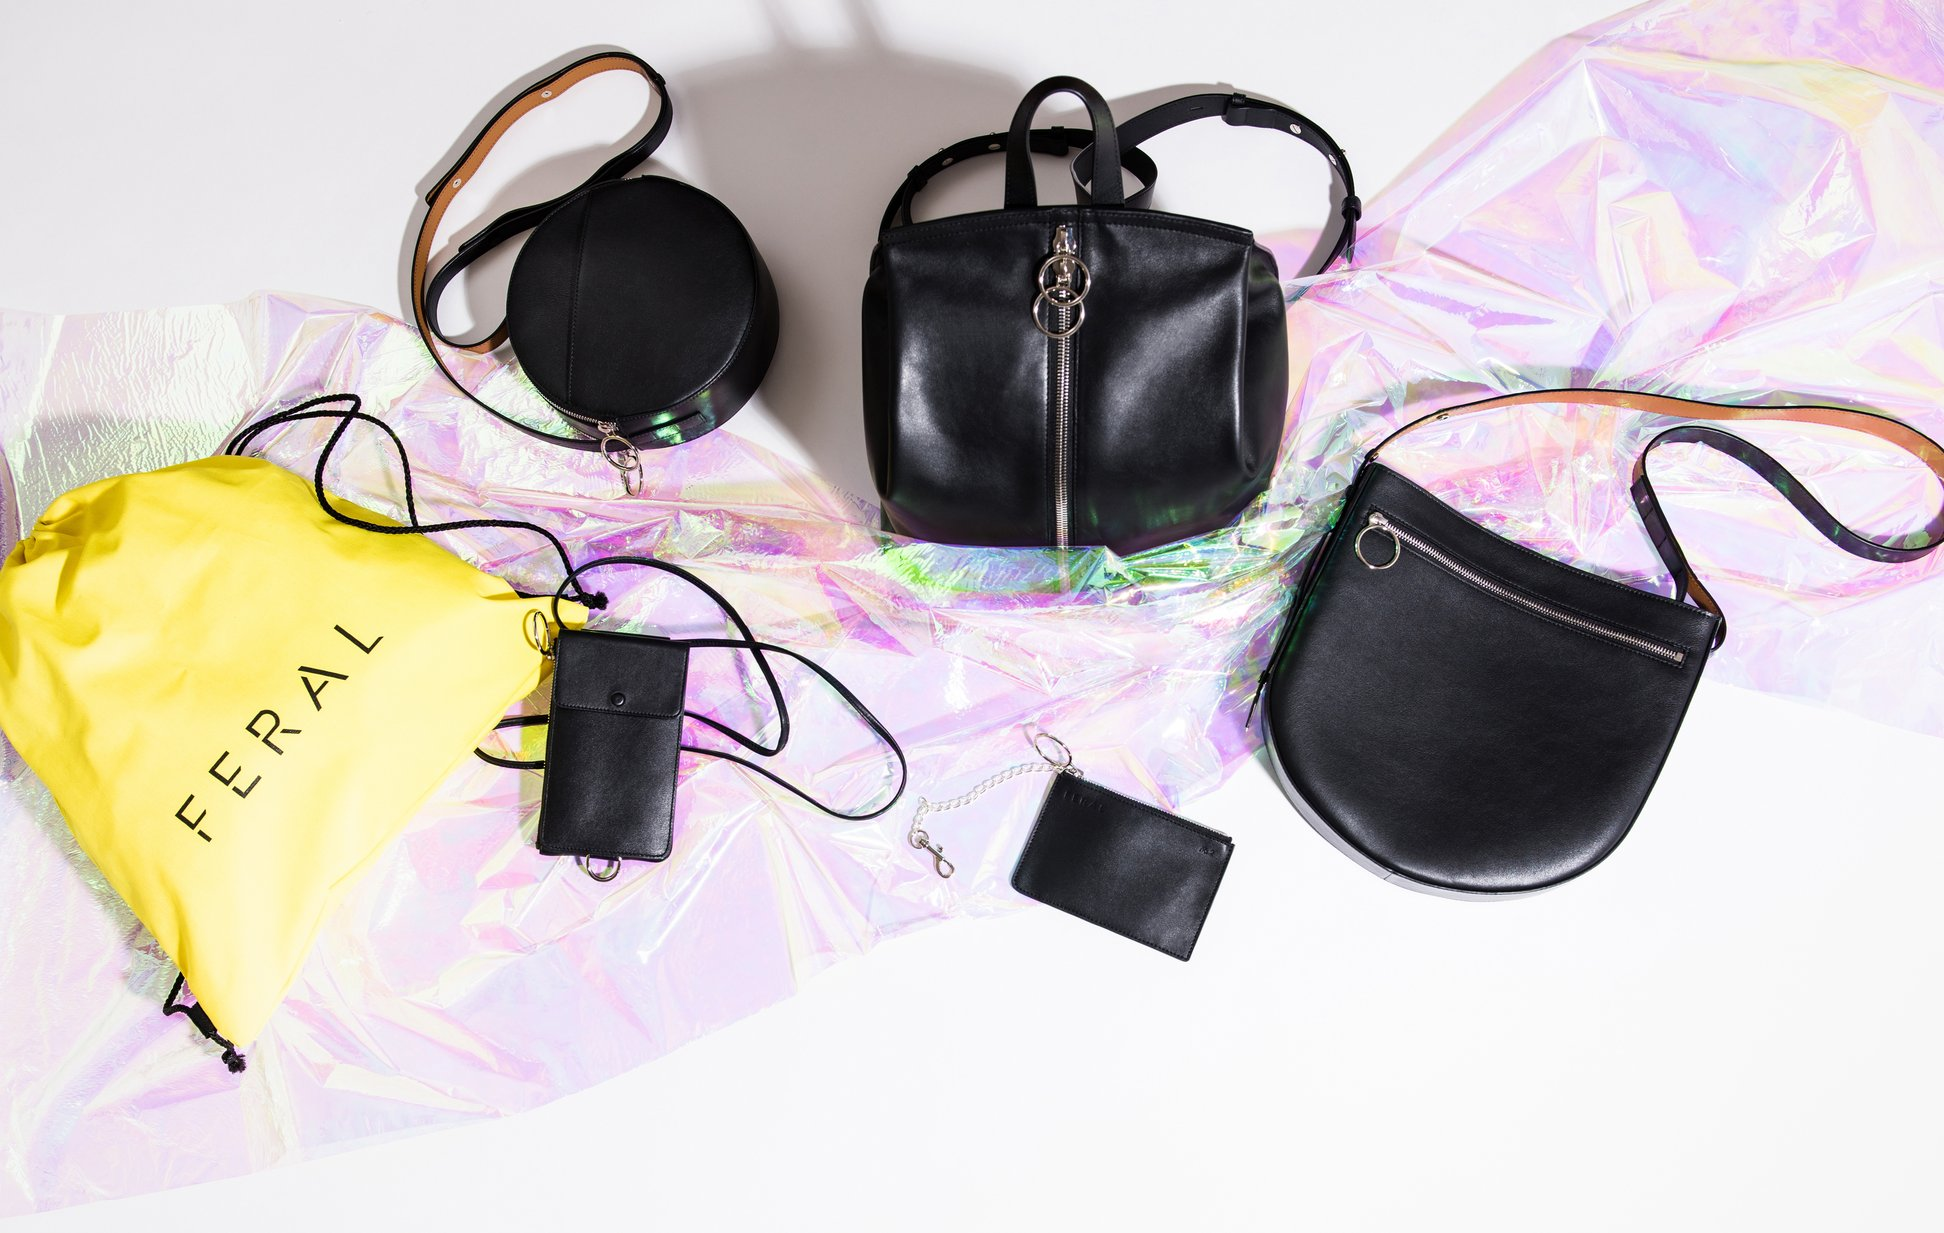 FERAL: Designer hand bags - Find them online and at Clementines in Seattle's Pioneer Square.